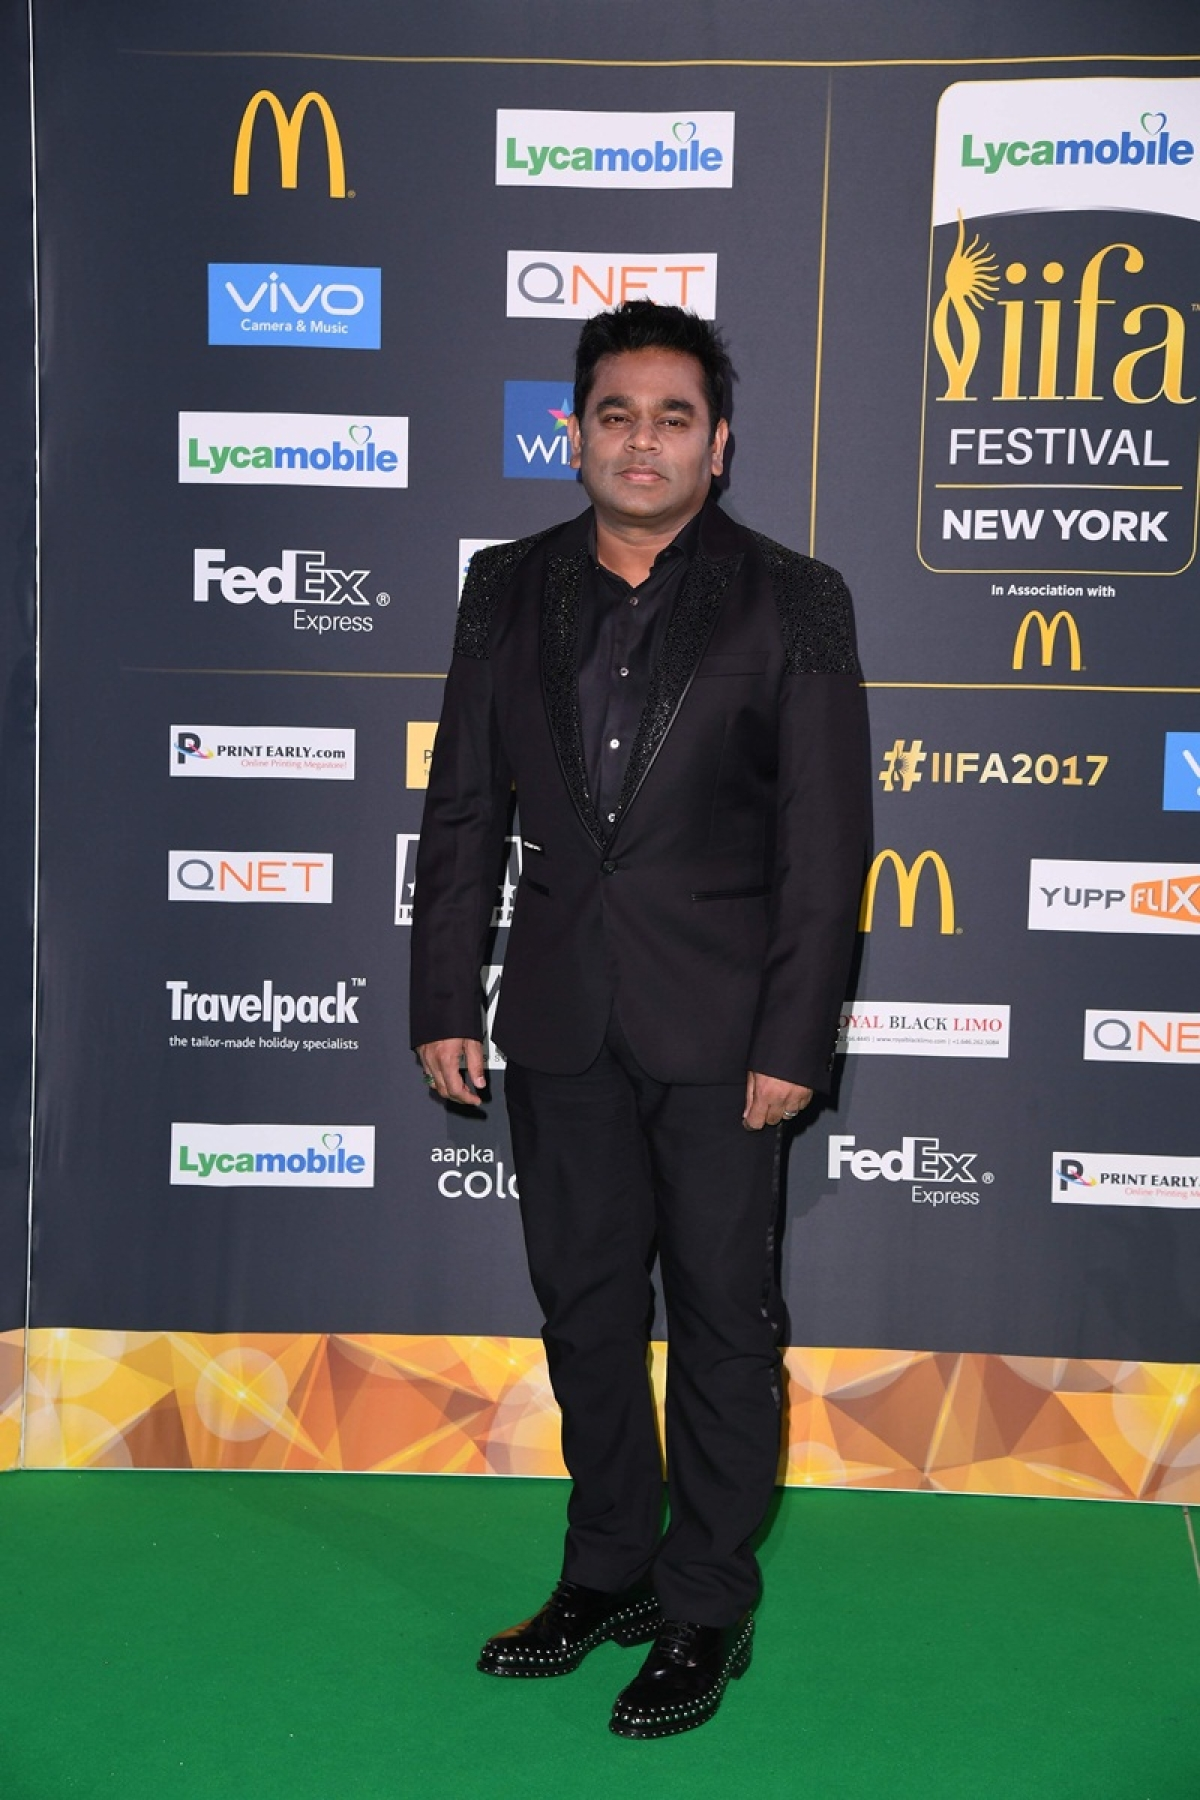 Bollywood music composer and singer AR Rahman arrive for the IIFA Awards July 15, 2017 at the MetLife Stadium in East Rutherford, New Jersey during the 18th International Indian Film Academy (IIFA) Festival. / AFP PHOTO / ANGELA WEISS